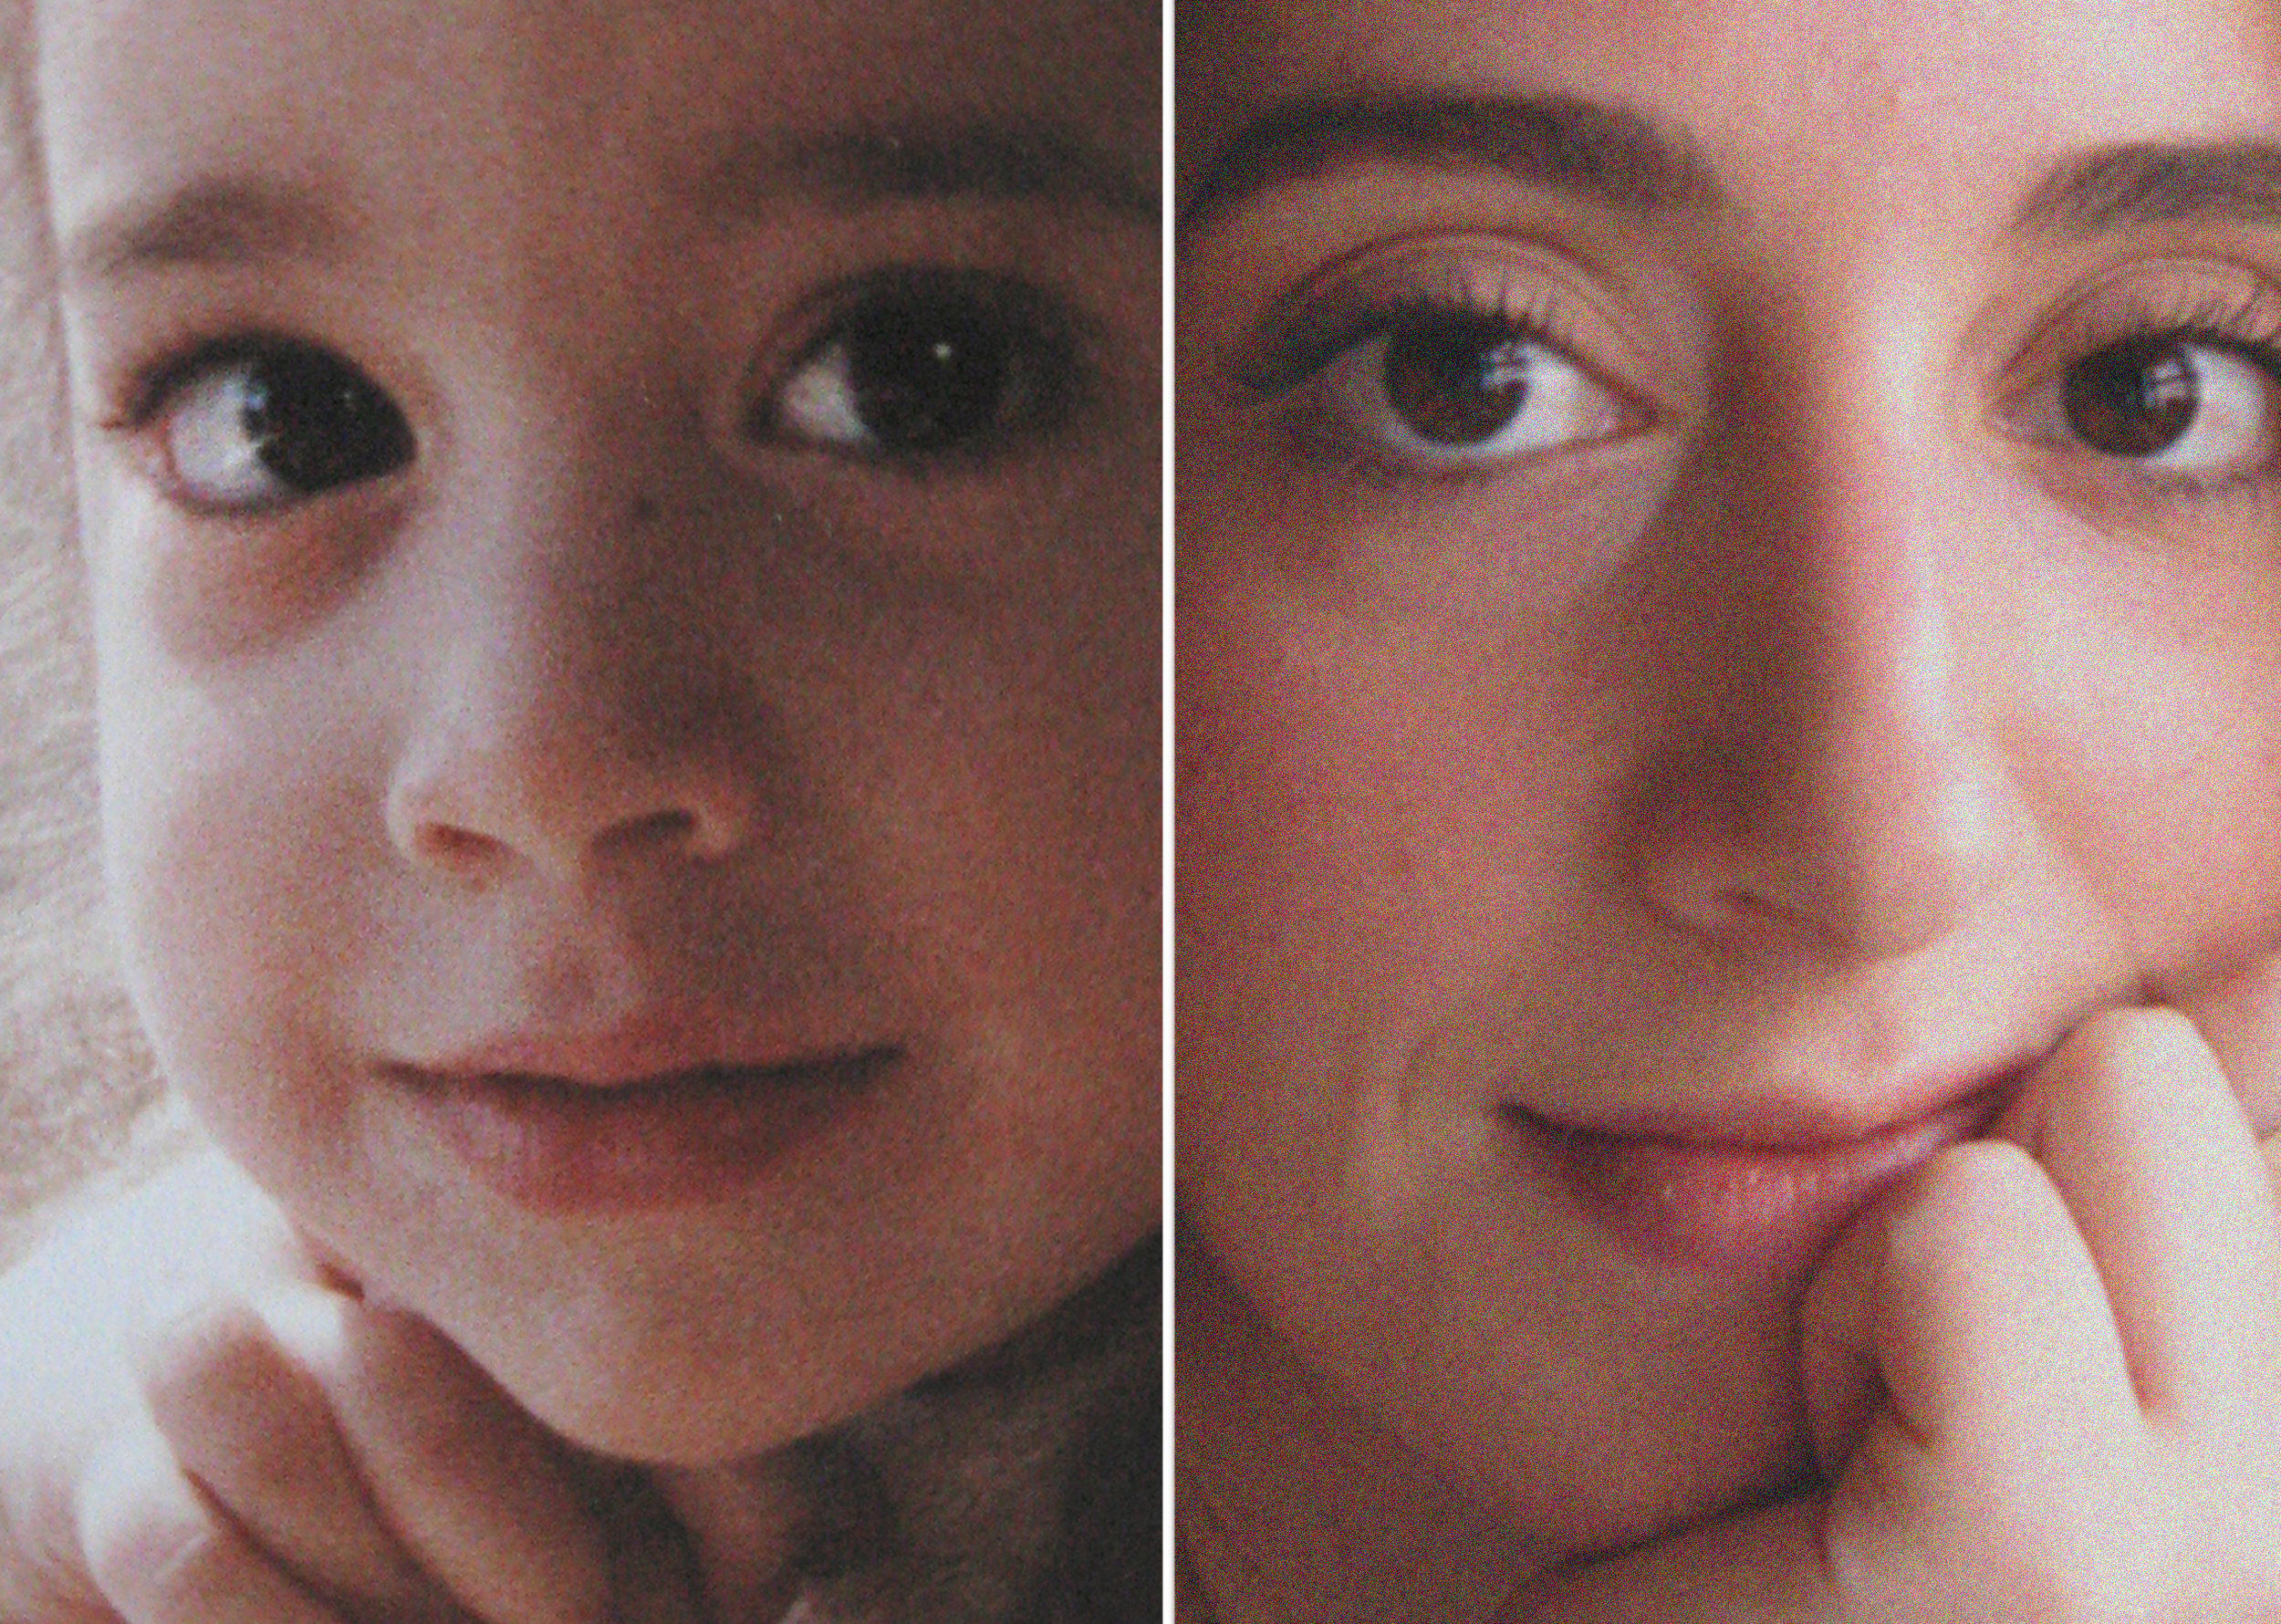 40-year-old-diptych-woman